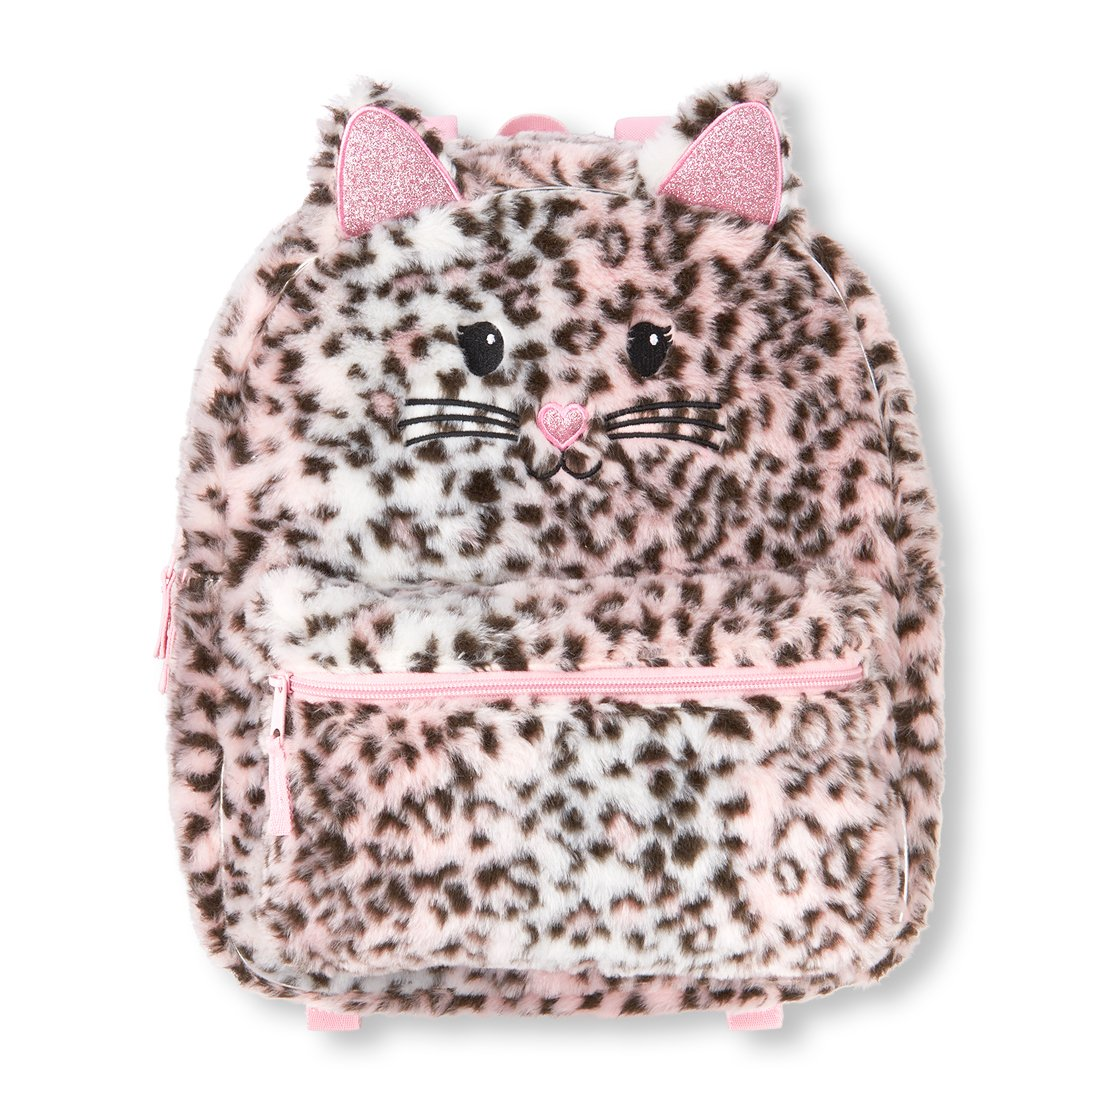 The Children's Place Girls' Backpack The Children' s Place